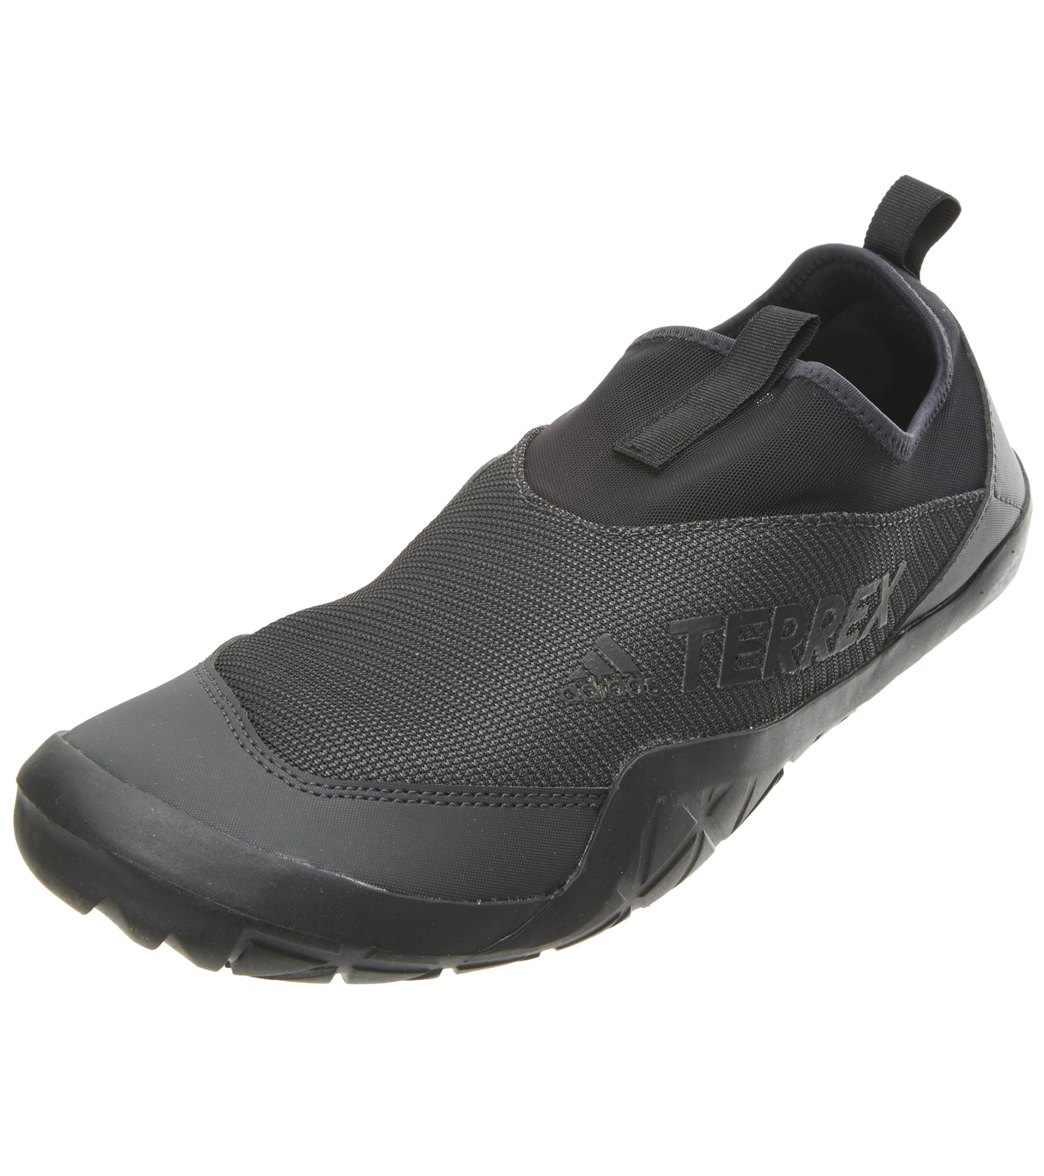 huge selection of d49db 5f27a Adidas Men s Climacool Jawpaw Slip-On Water Shoe at SwimOutlet.com - Free  Shipping